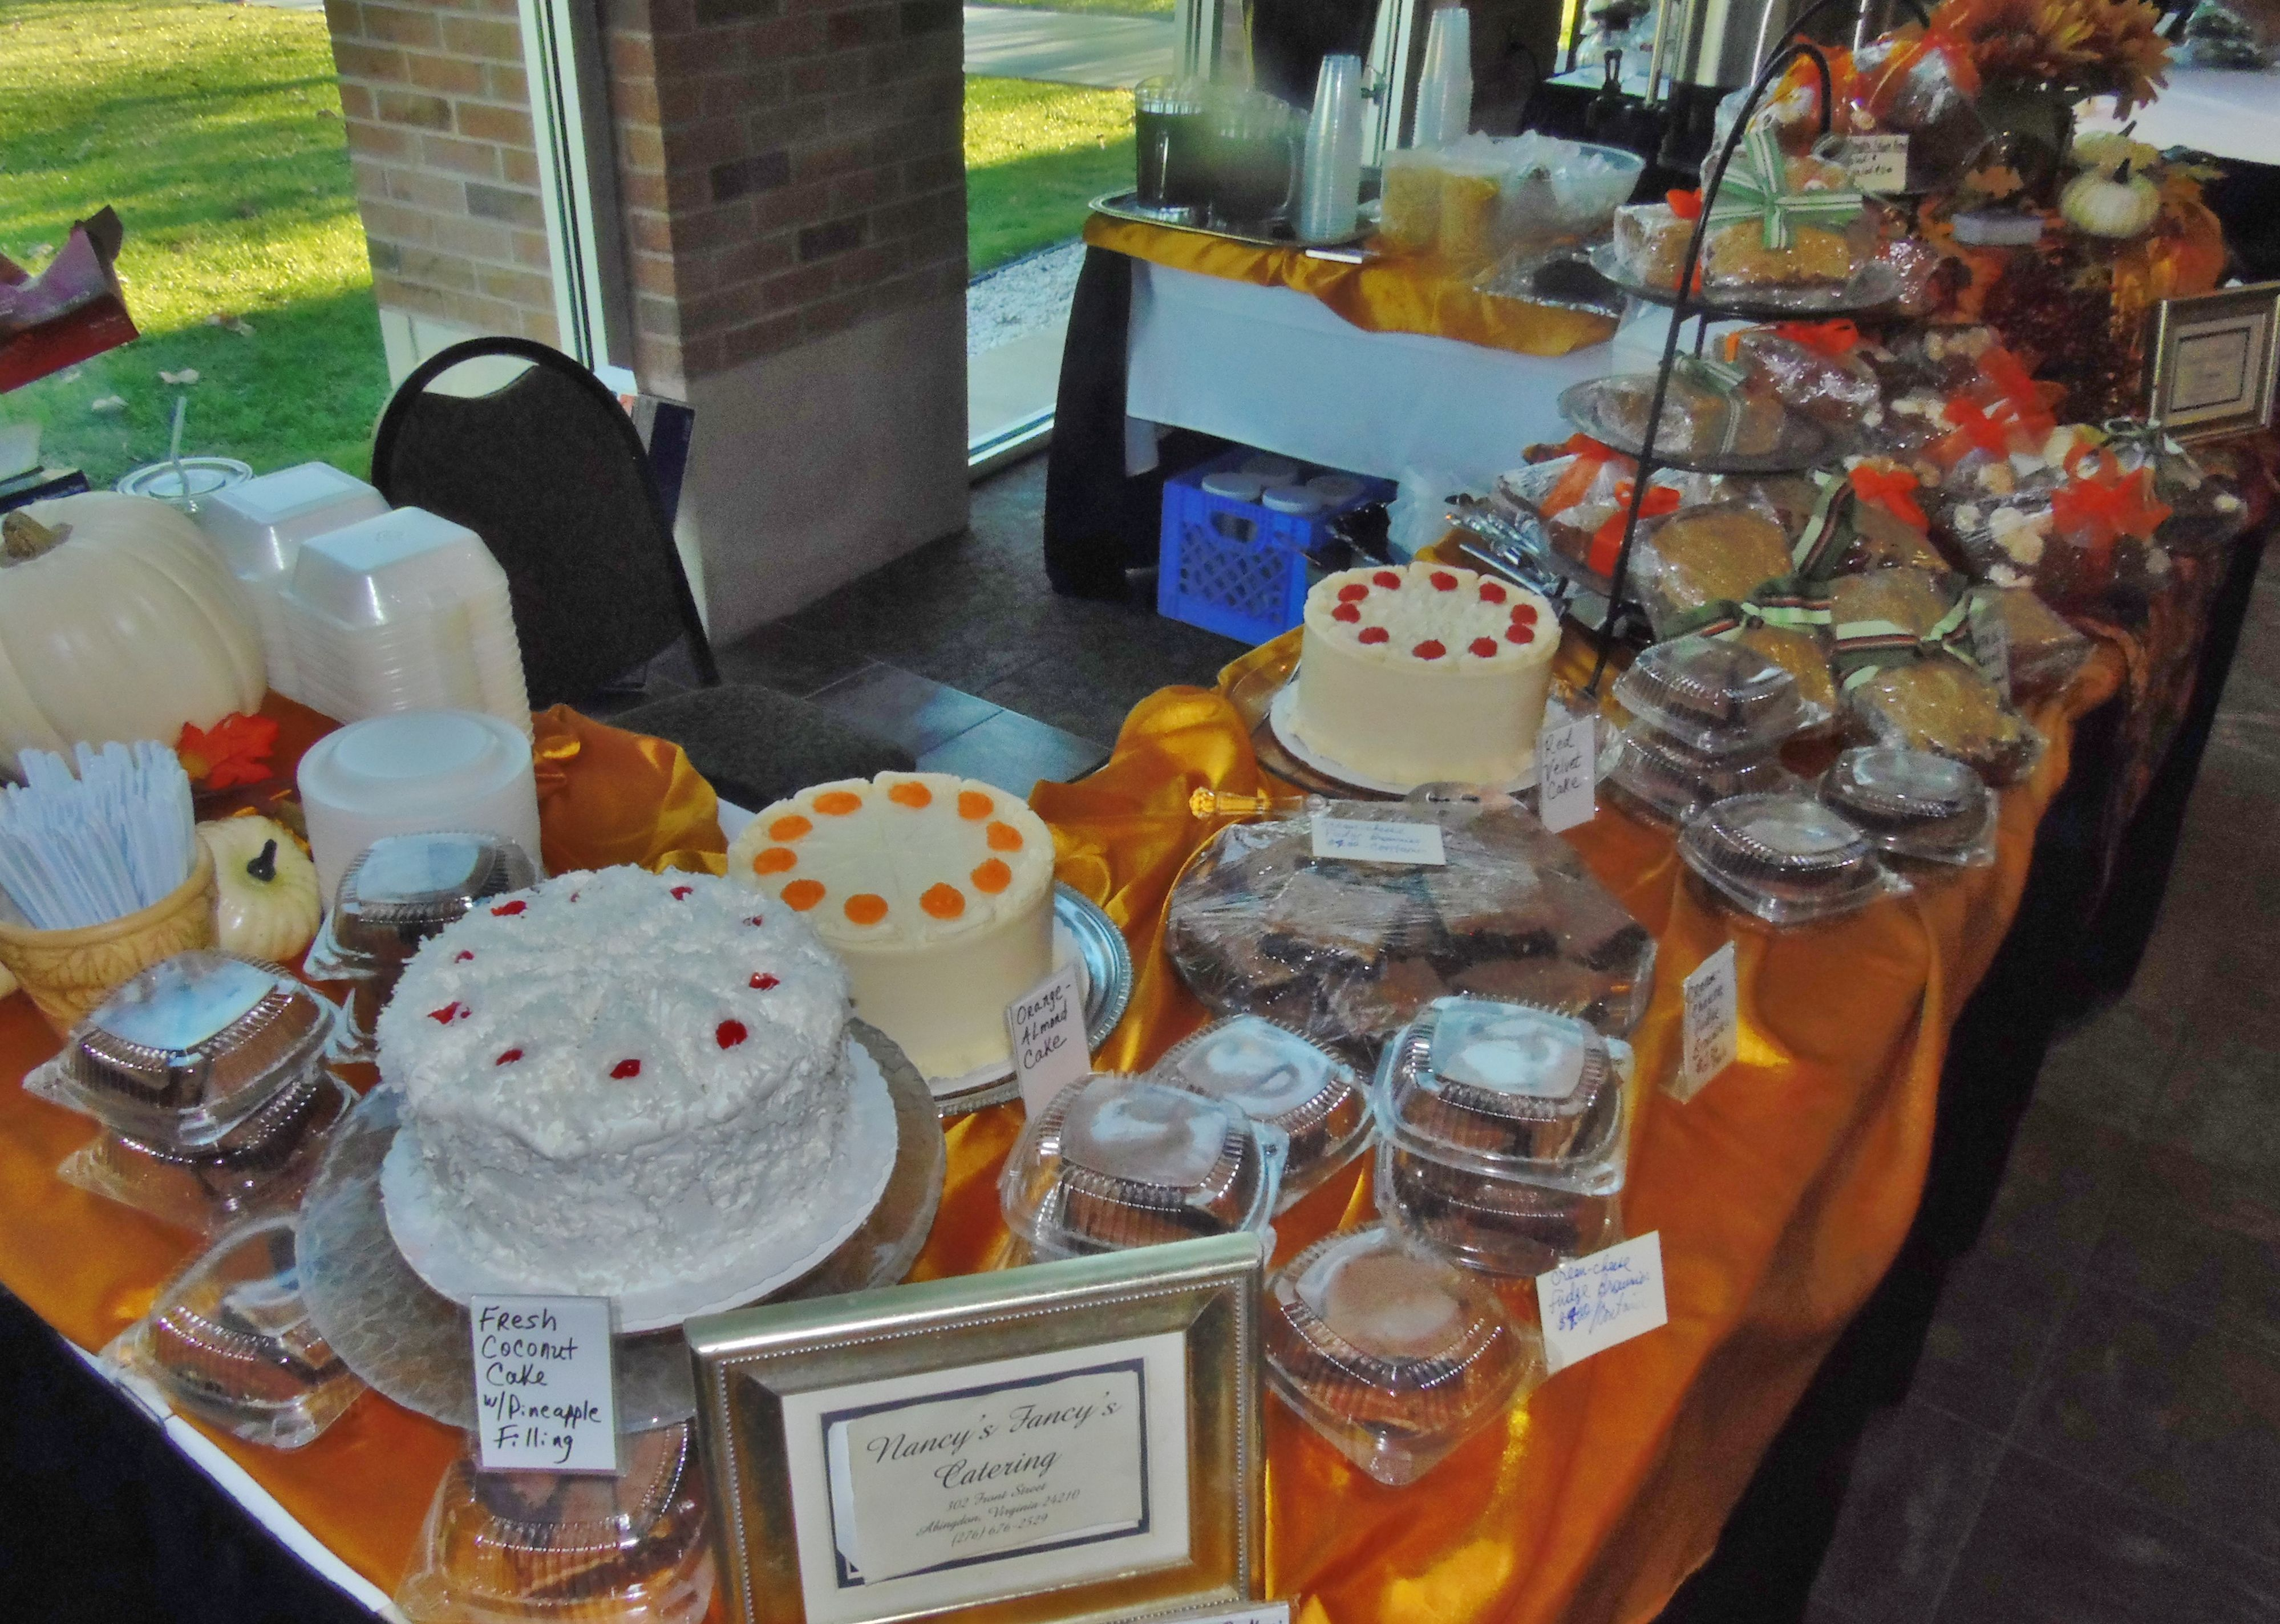 Here's another view of our vending table at the Taste of Home cooking show with all out homemade desserts we sold~